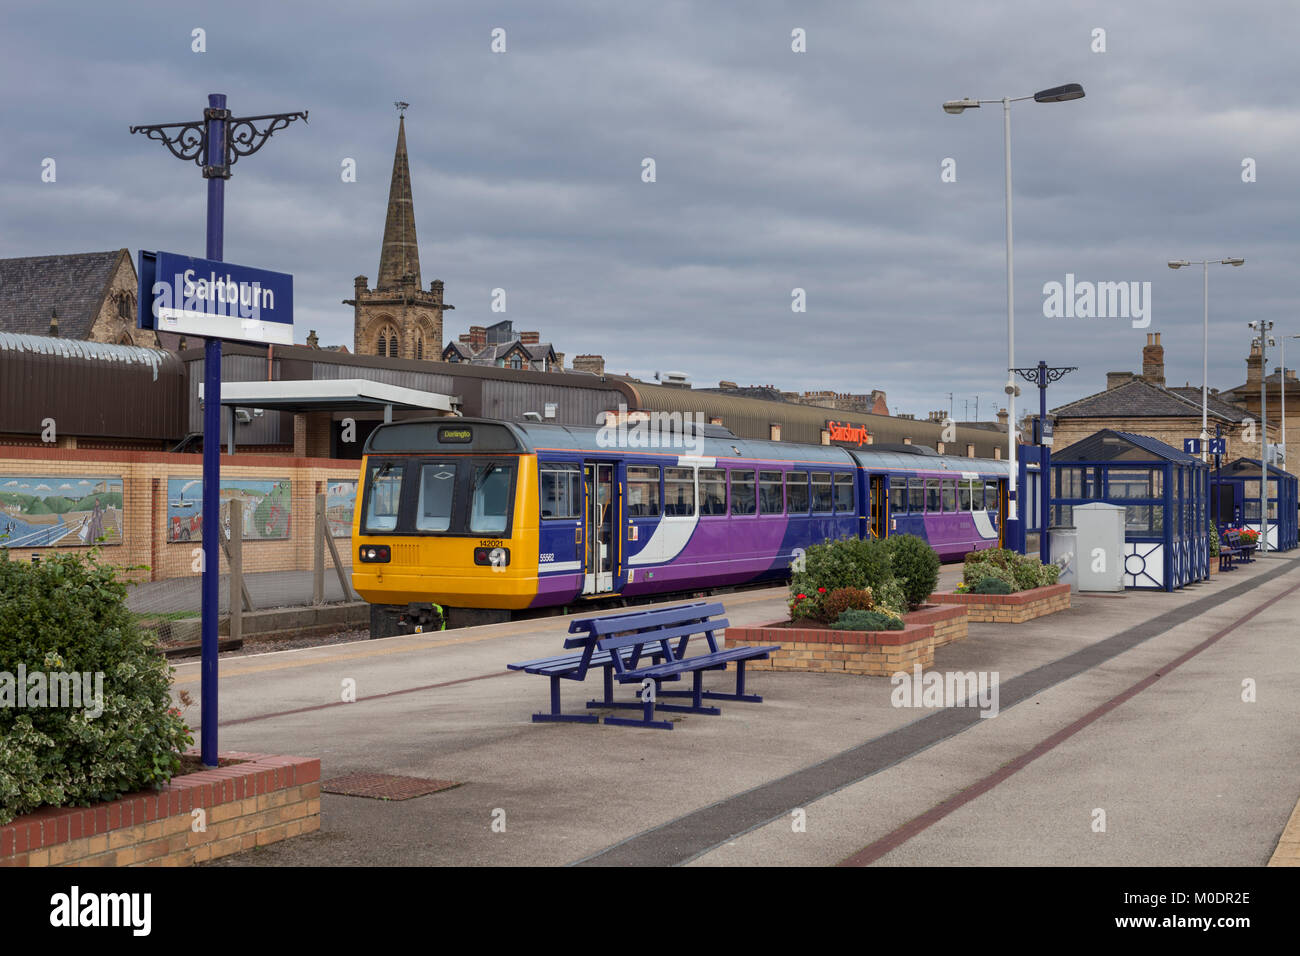 Northern rail class 142 pacer train at Saltburn station - Stock Image